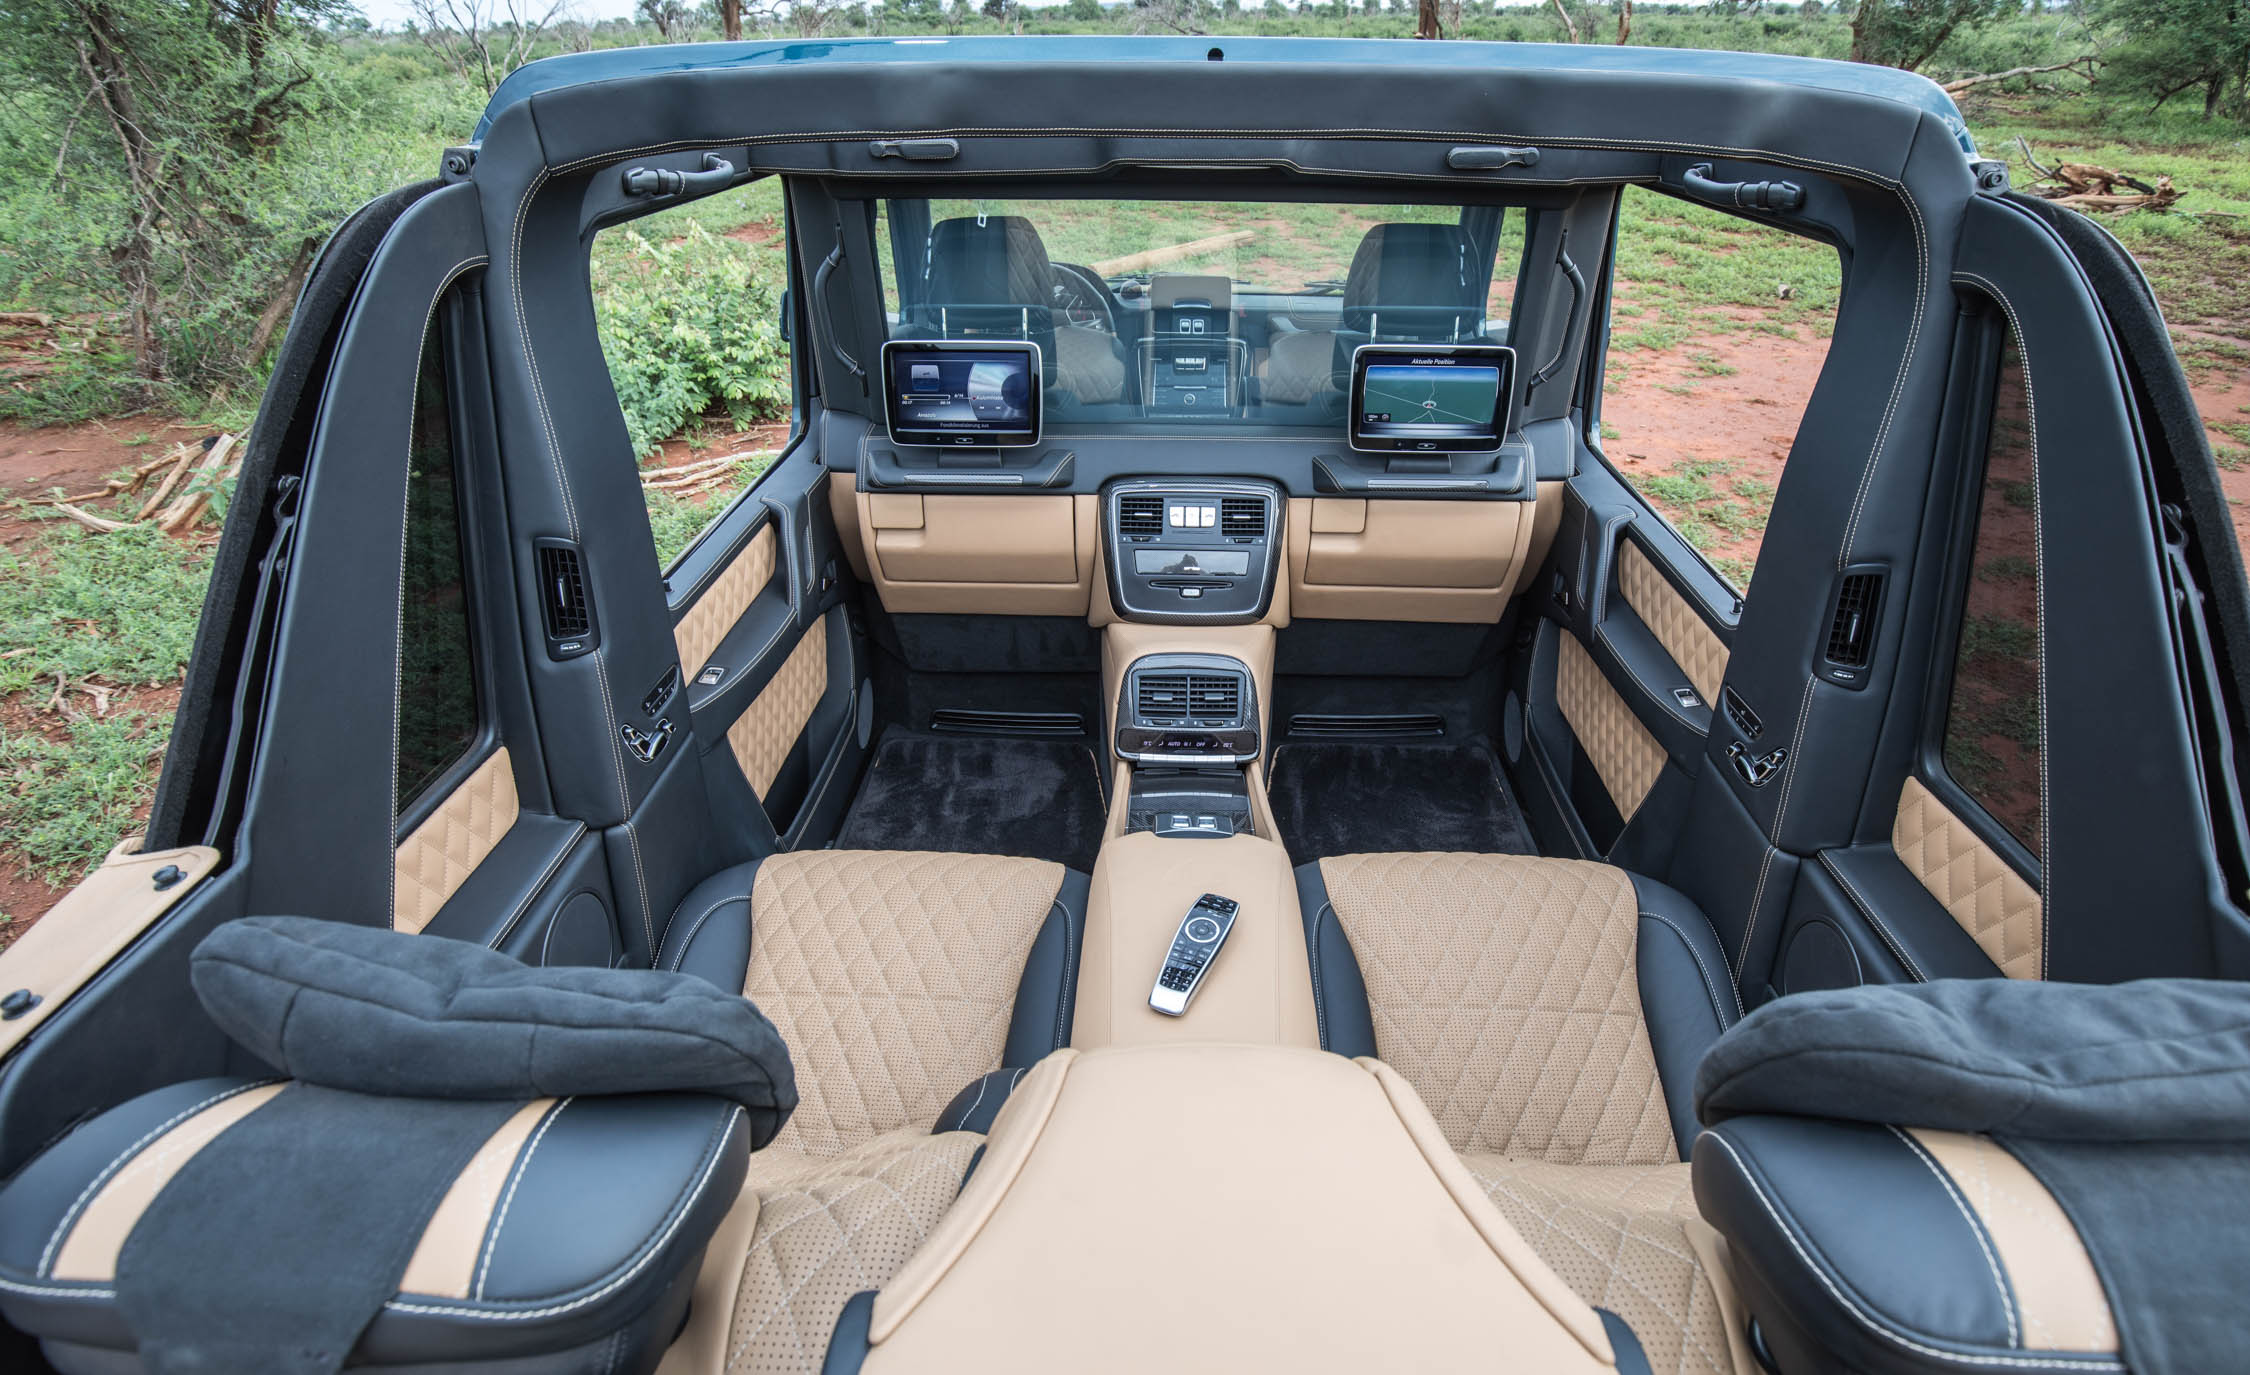 2018 mercedes maybach g650 landaulet cars exclusive videos and photos updates. Black Bedroom Furniture Sets. Home Design Ideas